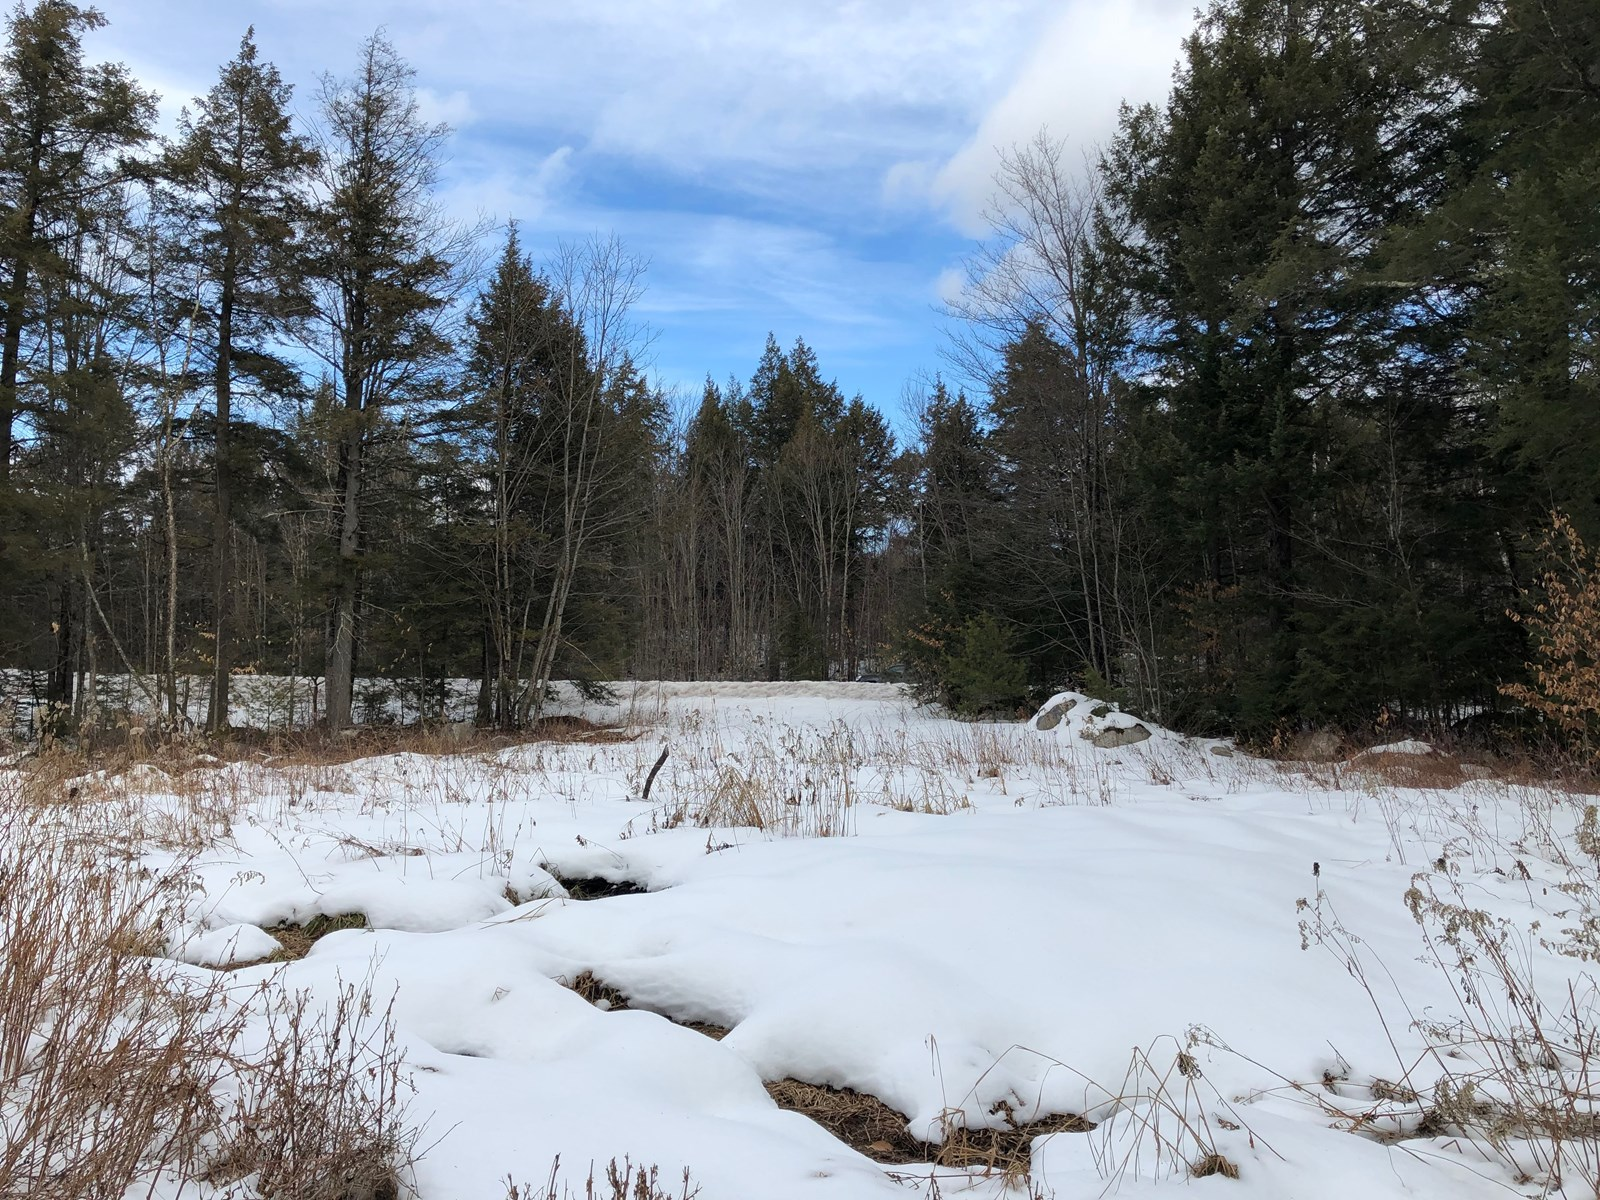 Timber Investment Property For Sale in Maine